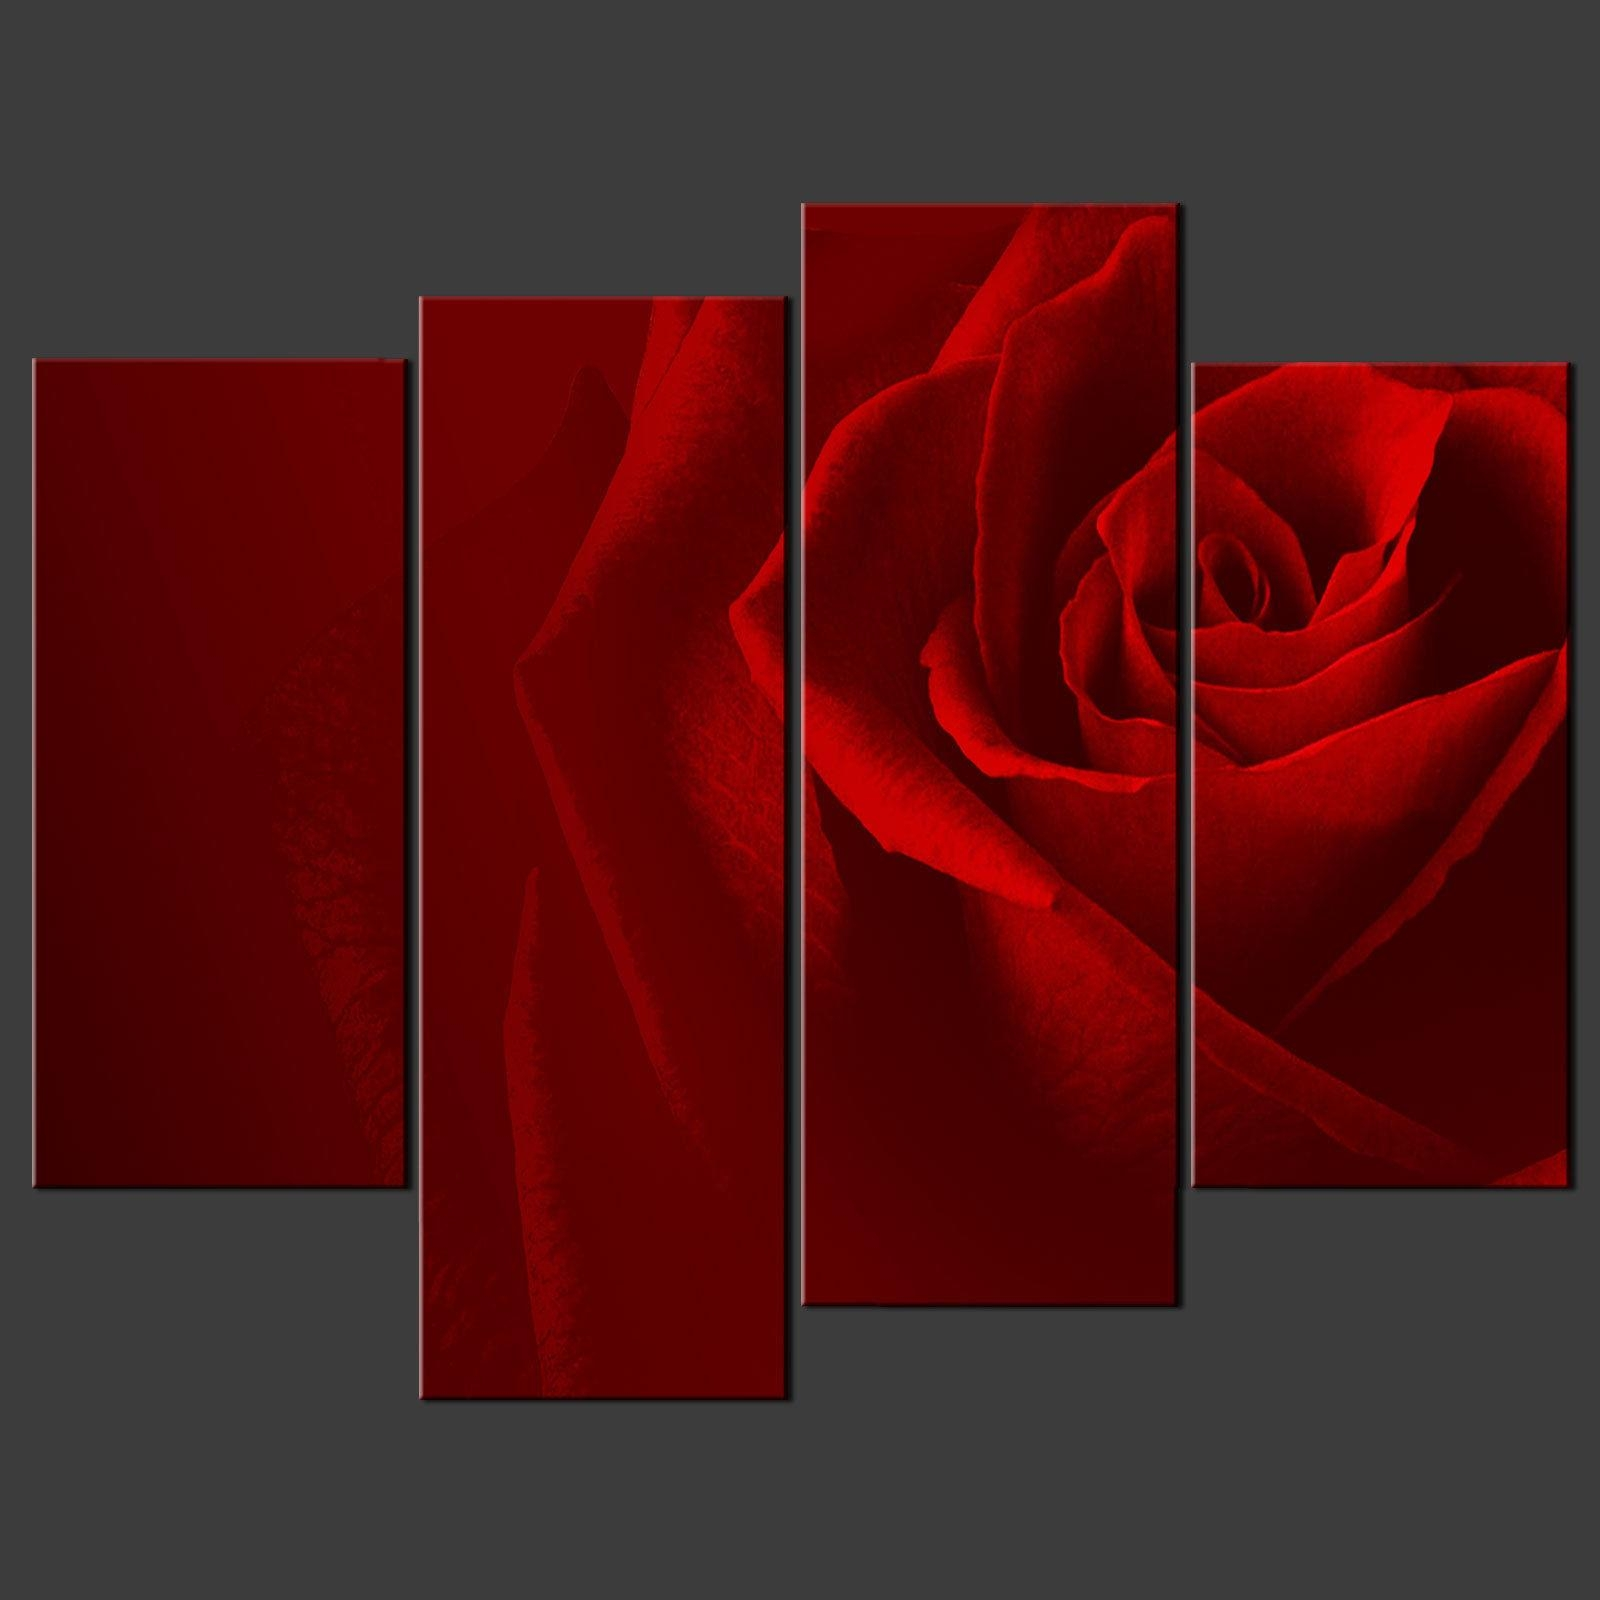 Red Rose Canvas Wall Art Pictures Prints Decor Larger Sizes Within Red Rose Wall Art (Image 15 of 20)